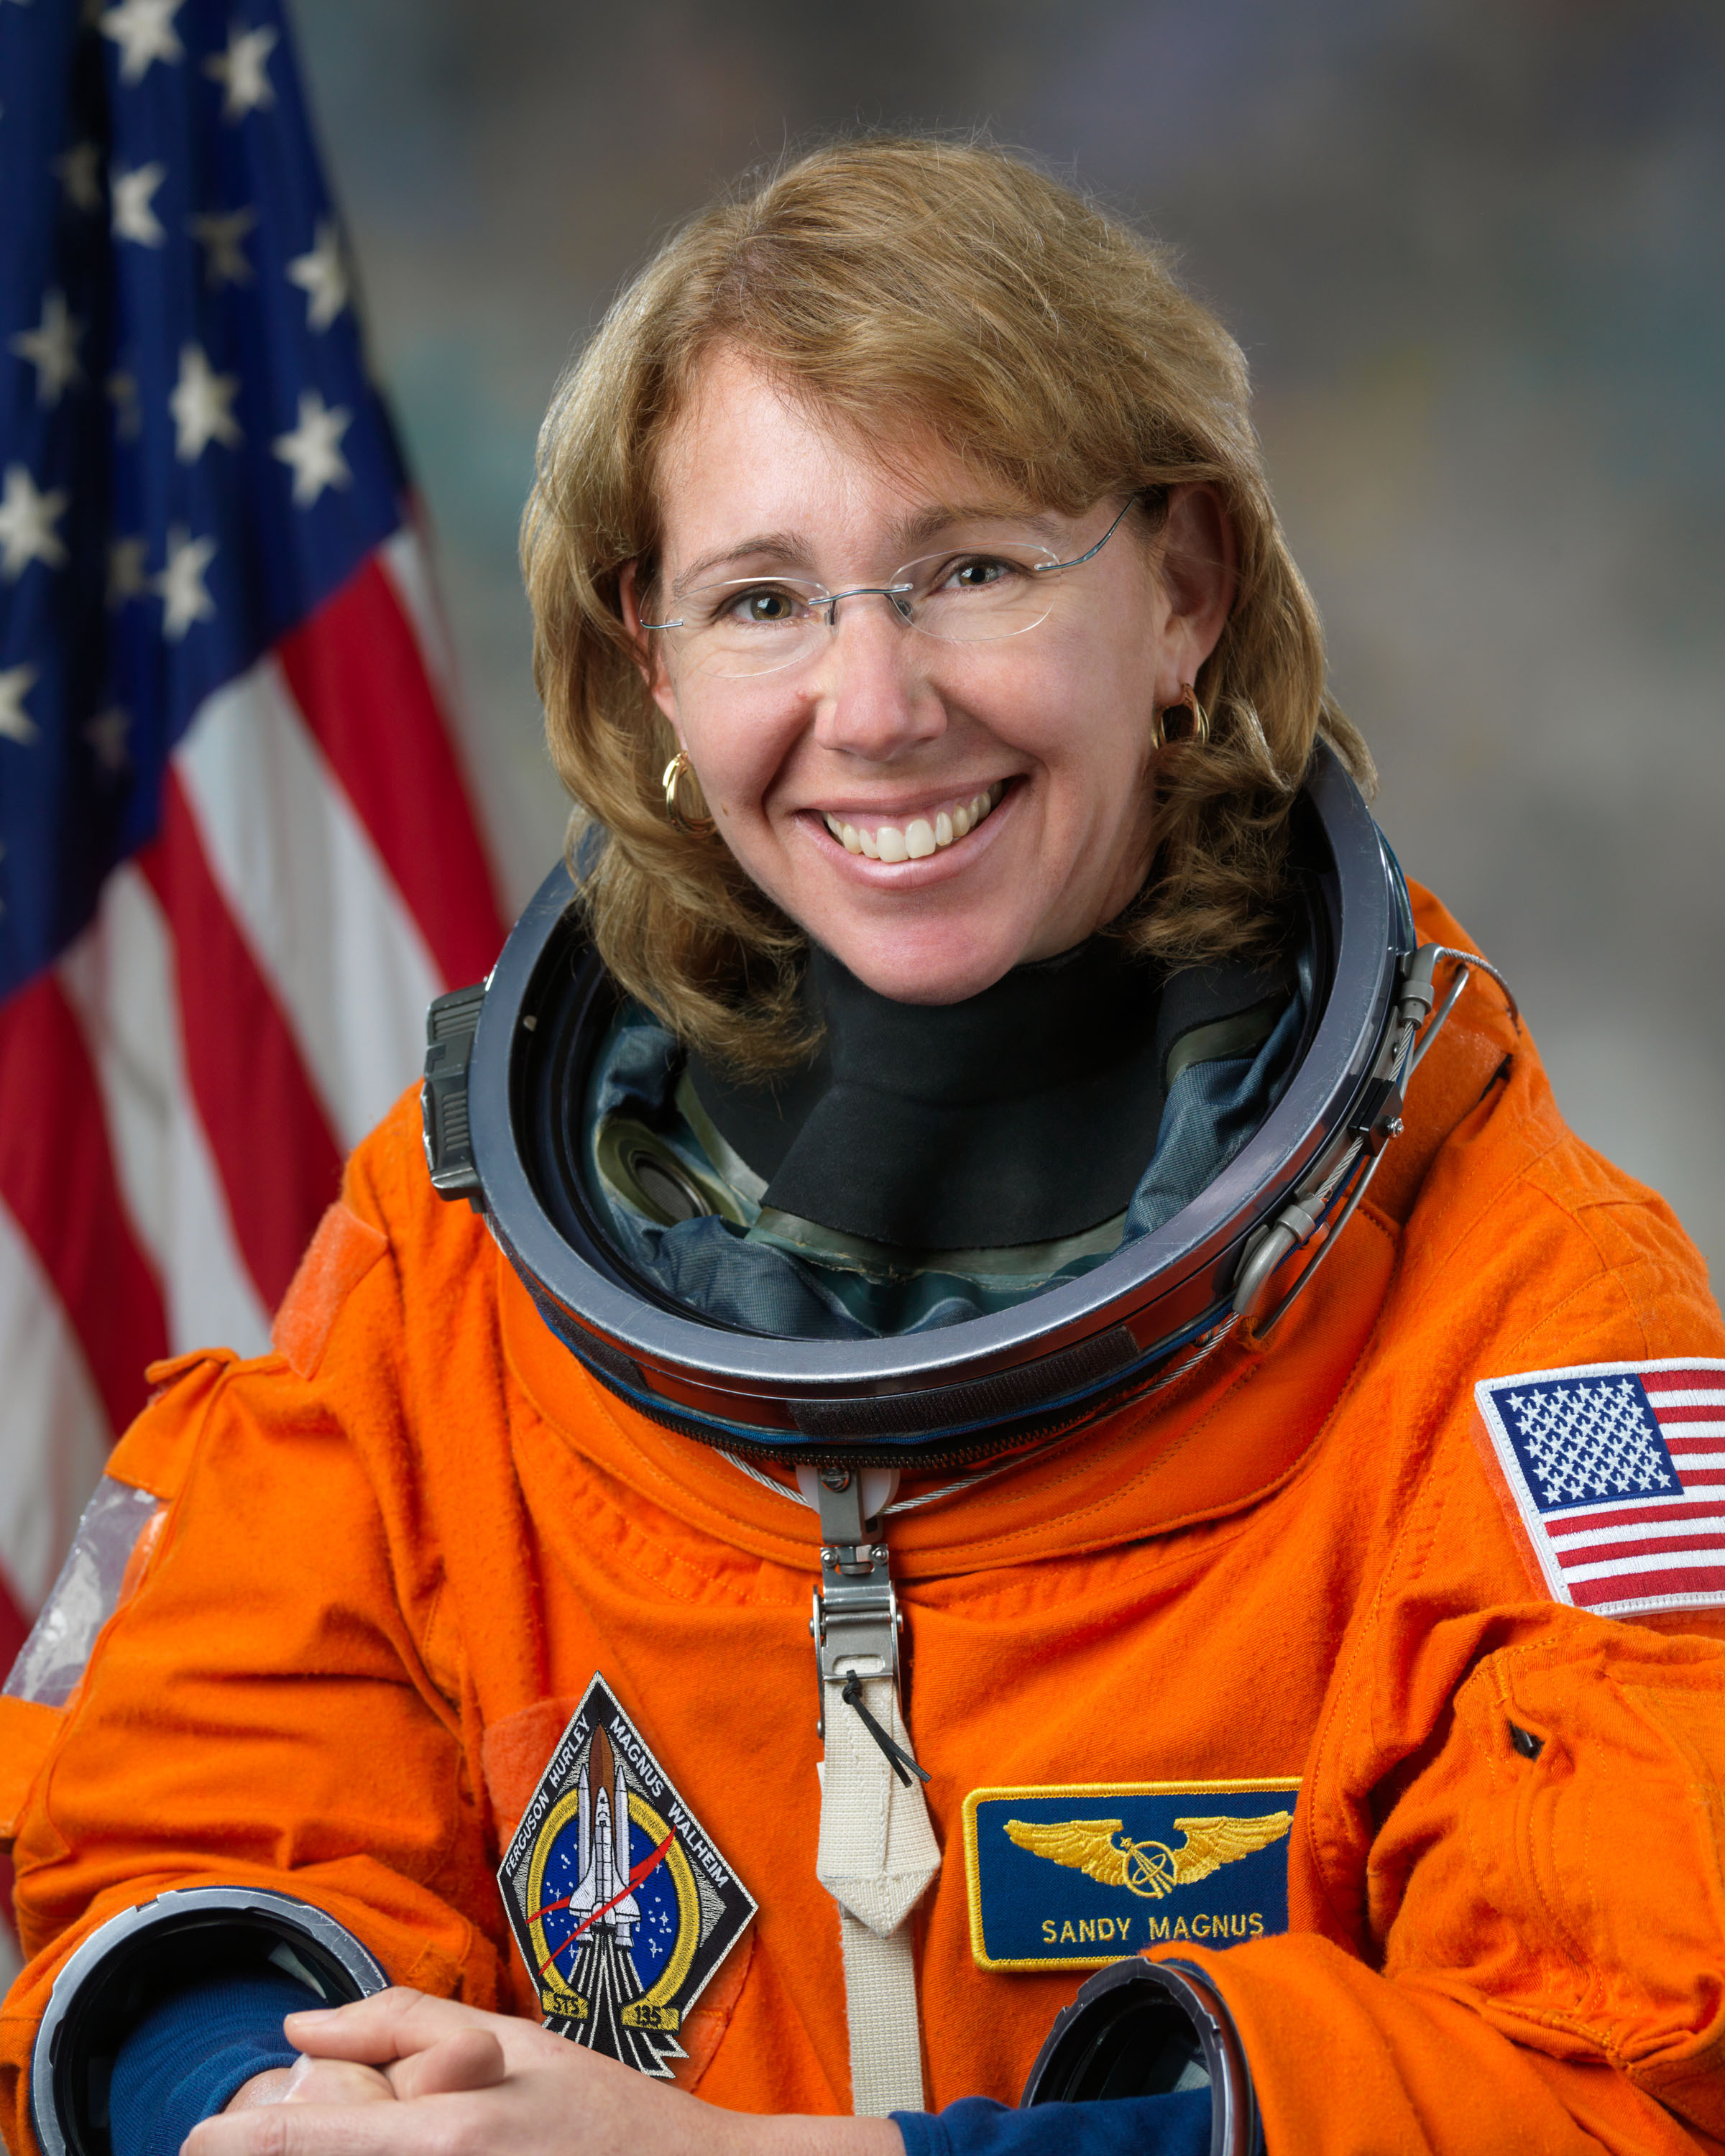 sts 135 crew global friendship through space mission specialist sandra mangus